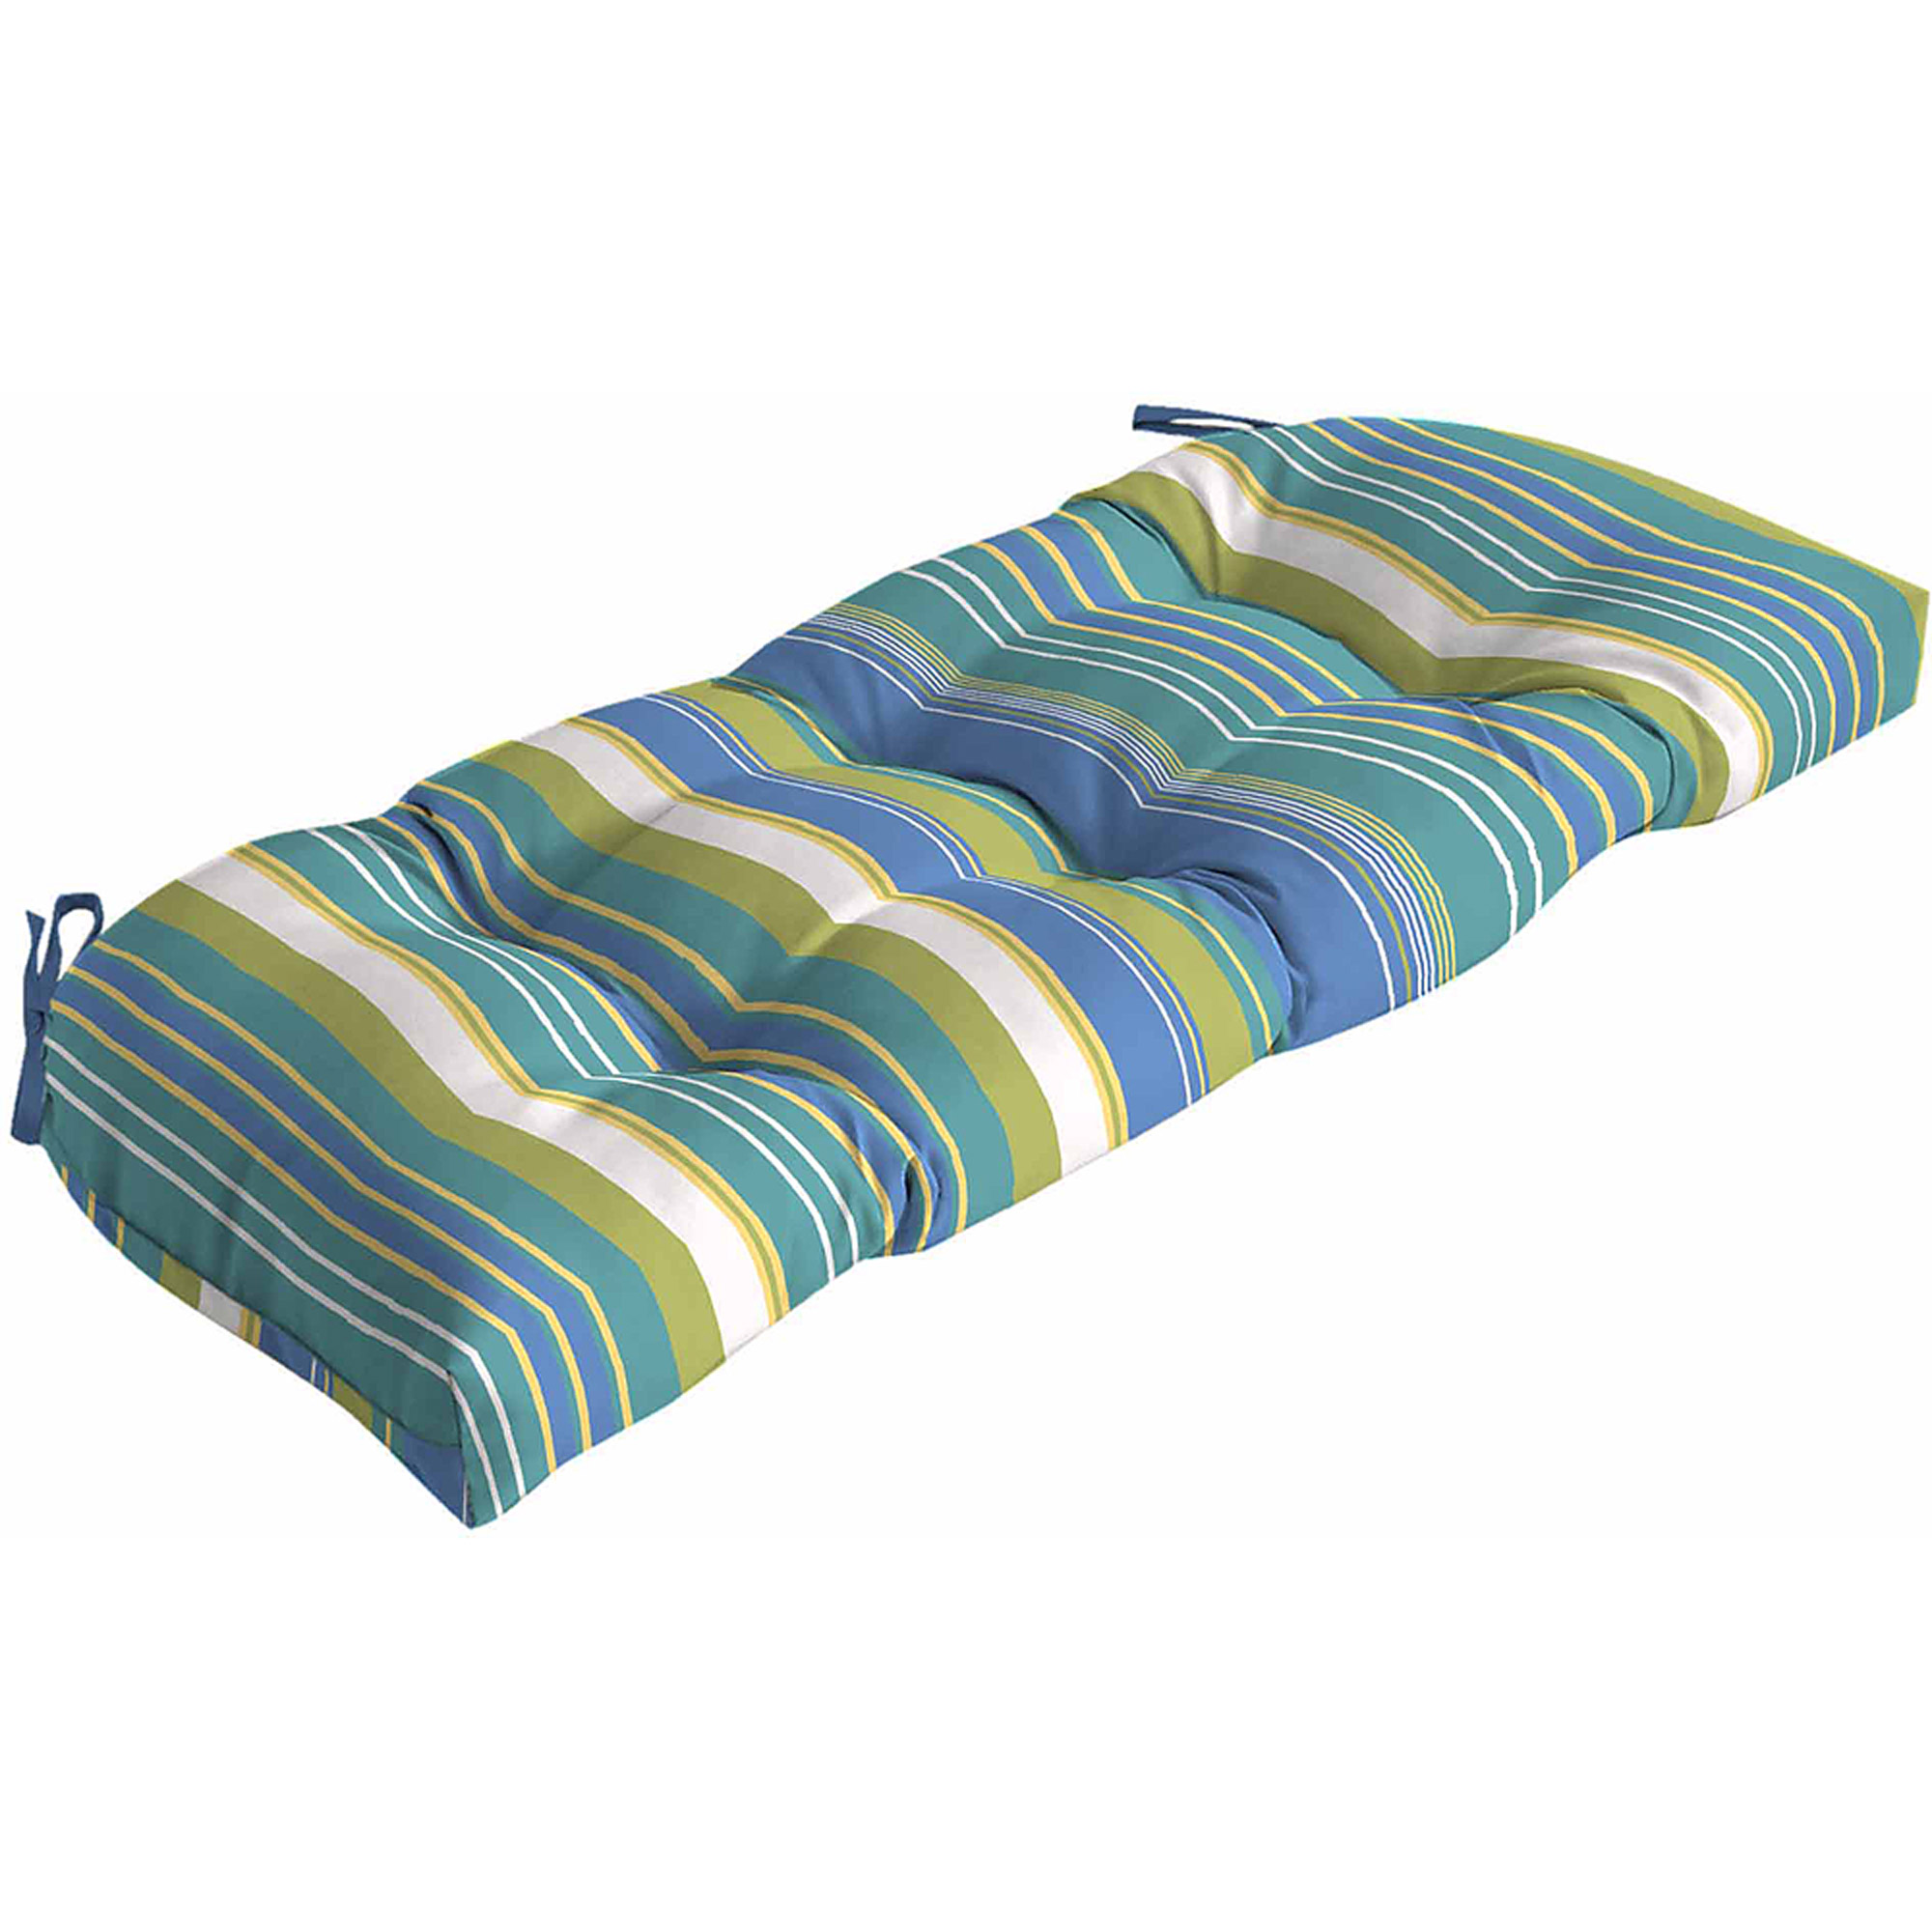 Arden Outdoors Wicker Settee Cushion for Patio